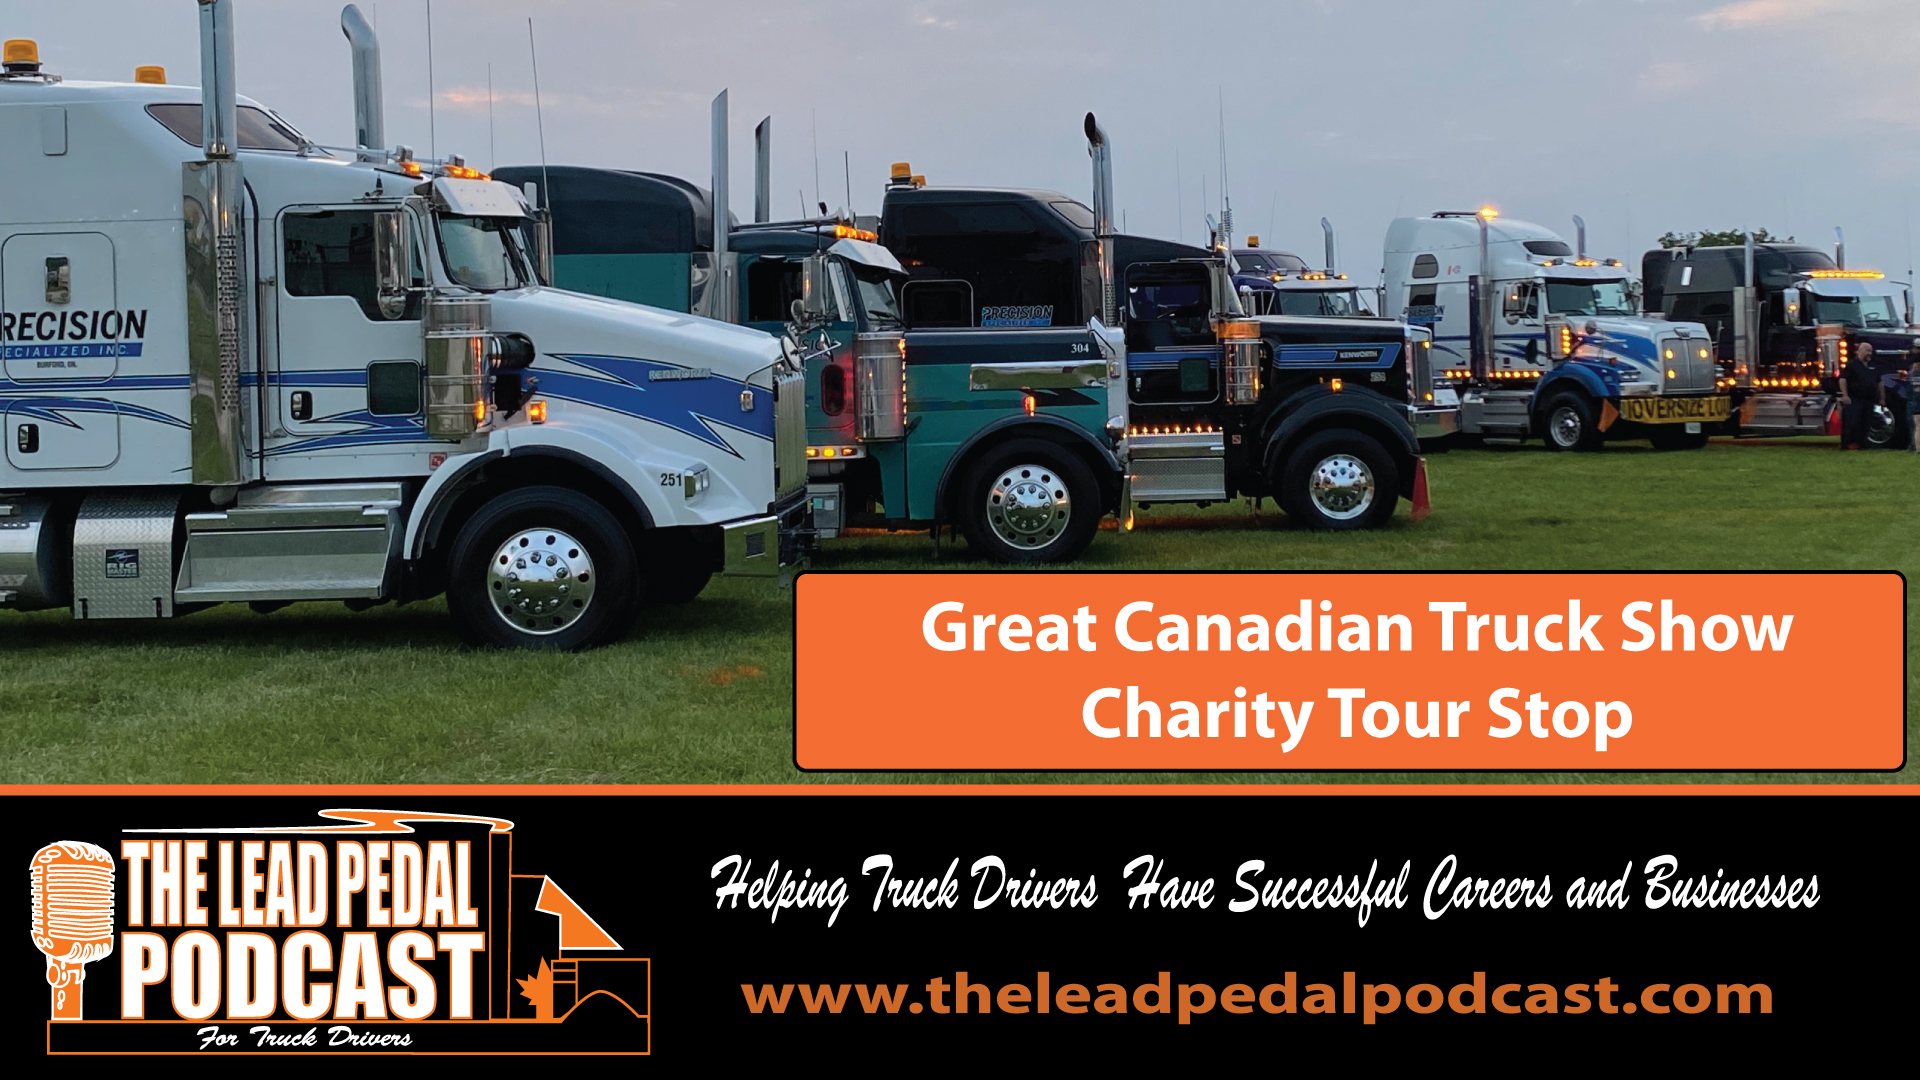 LP675 Helping Wounded Warriors with the Great Canadian Truck Show Charity Tour Stop